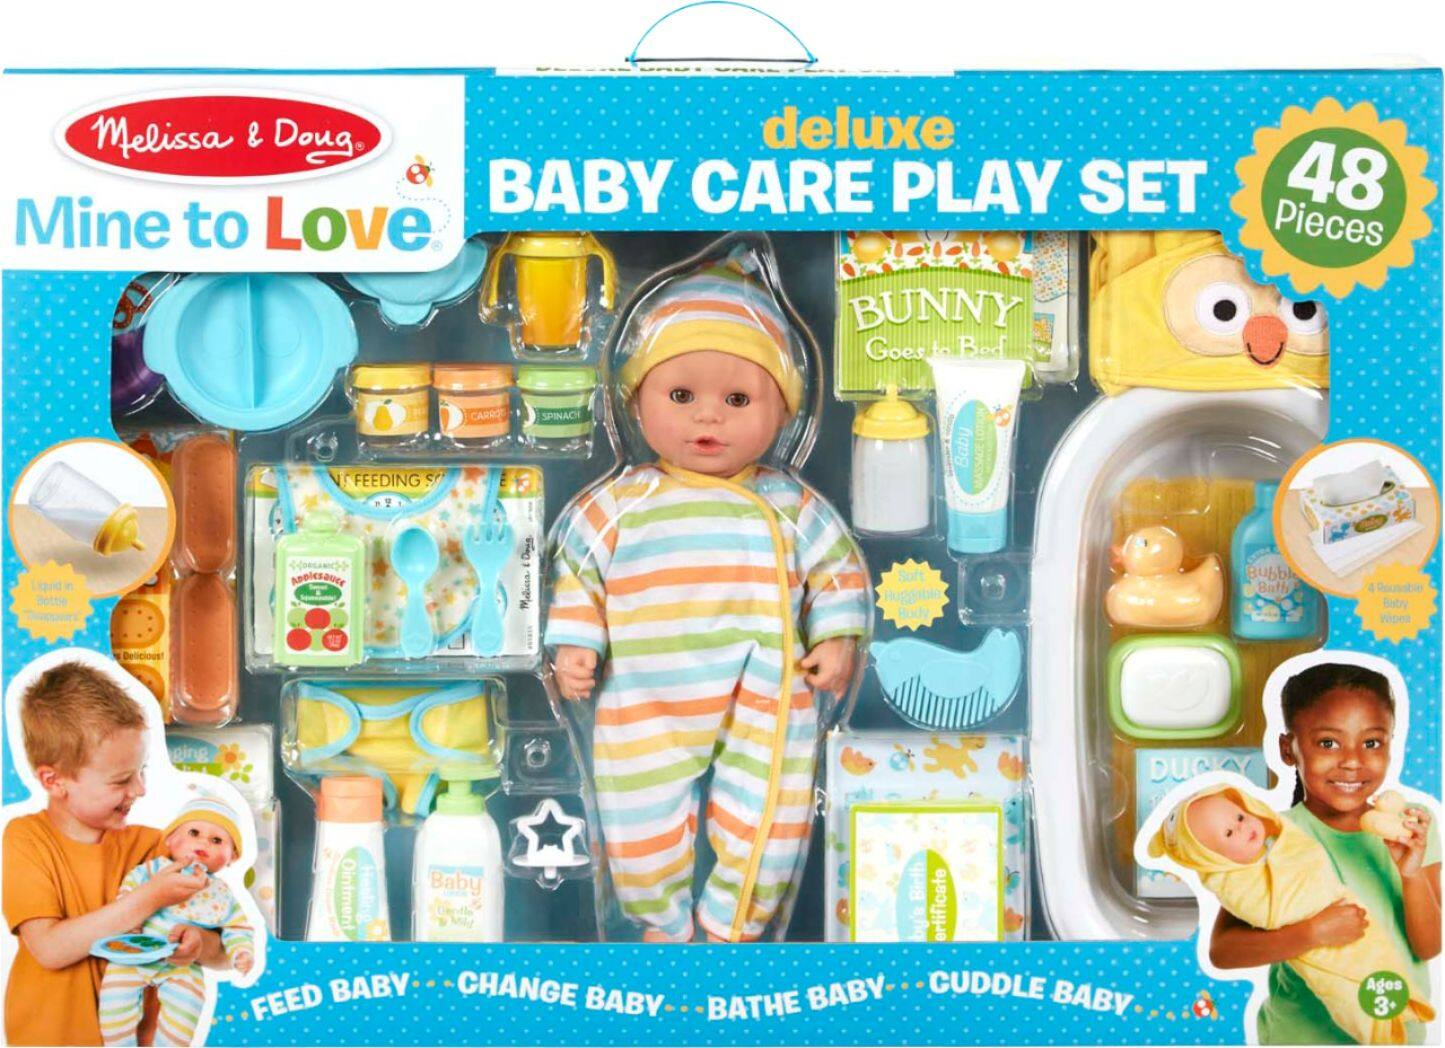 48-Piece Melissa & Doug - Mine to Love Deluxe Baby Care Play Set $51 + Free shipping